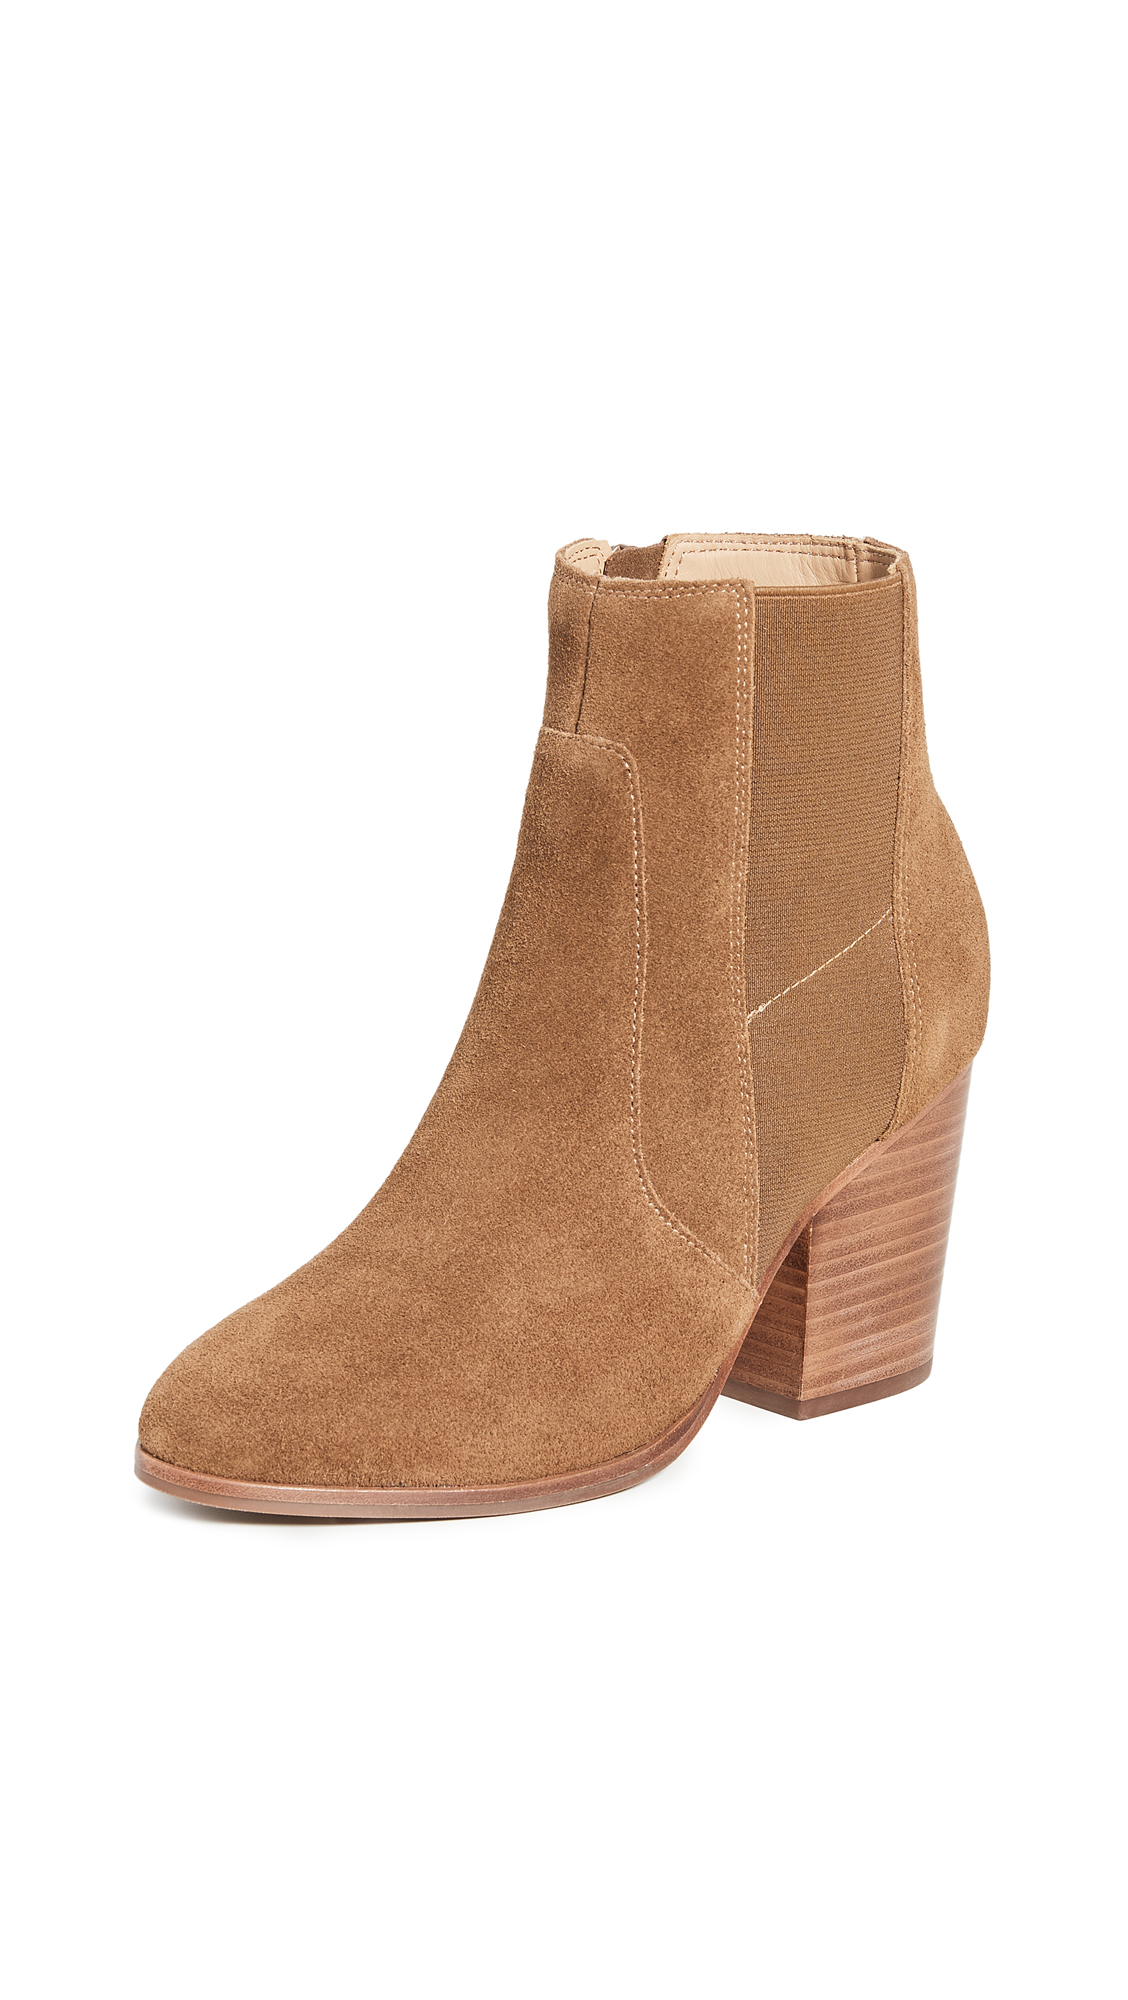 Soludos Emma Block Heel Booties – 50% Off Sale